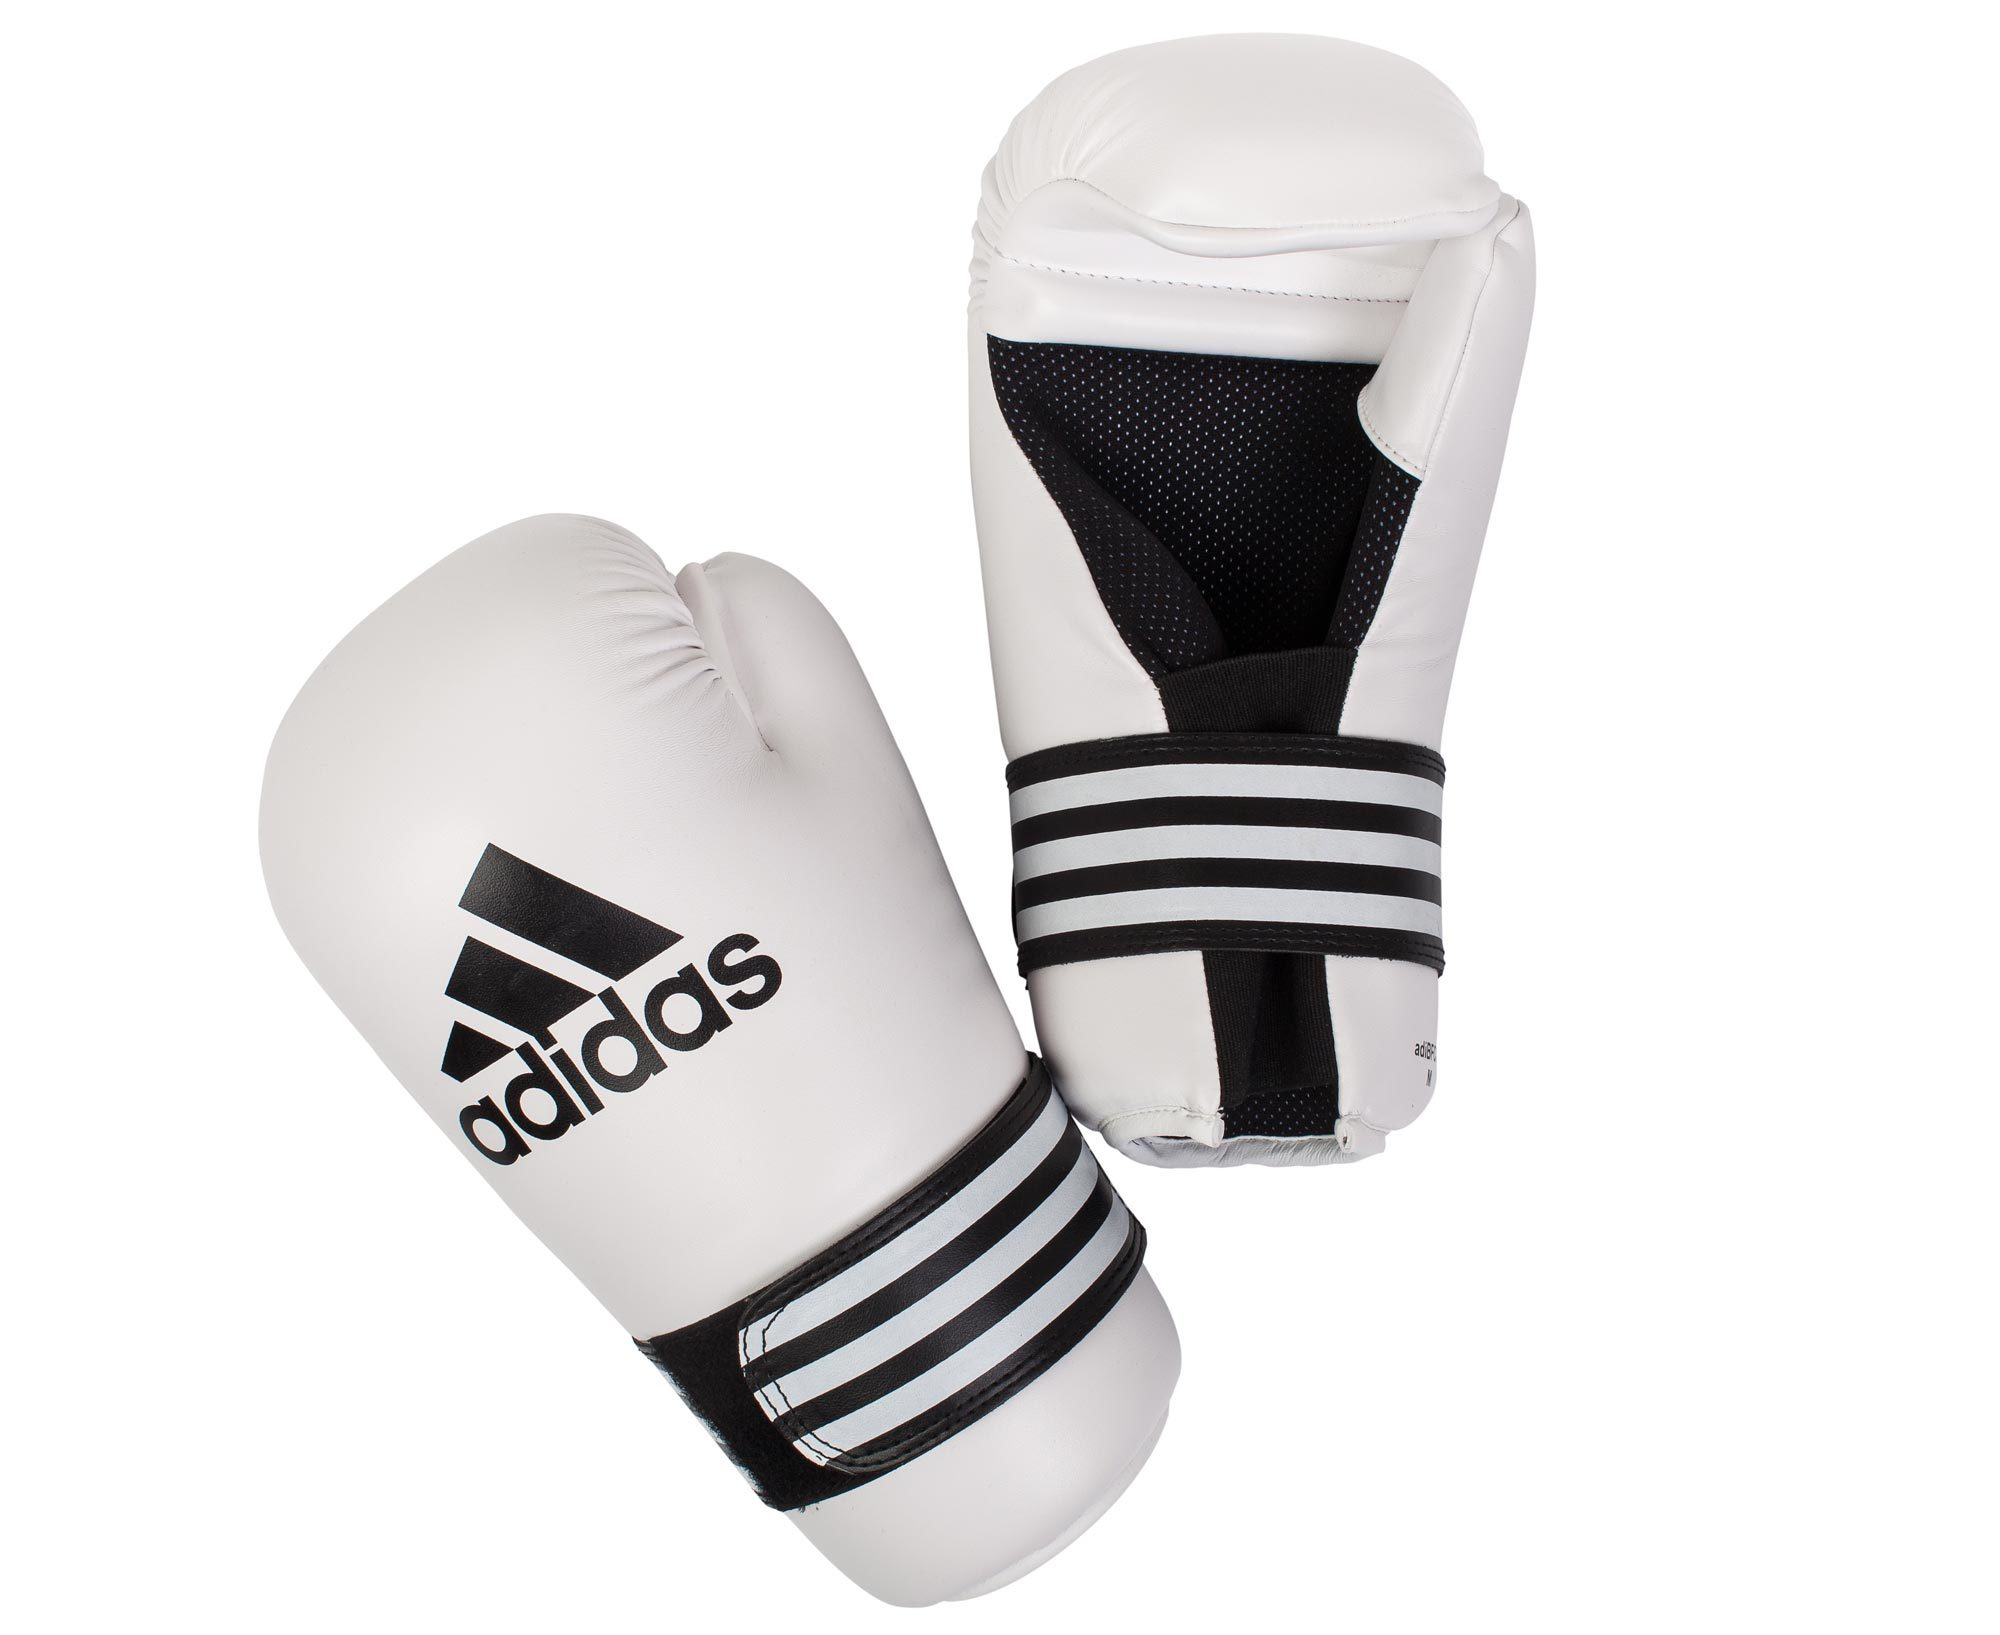 Перчатки ПЕРЧАТКИ ДЛЯ КИКБОКСИНГА SEMI CONTACT GLOVES ADIDAS perchatki_polukontakt_semi_contact_gloves_belye.jpg